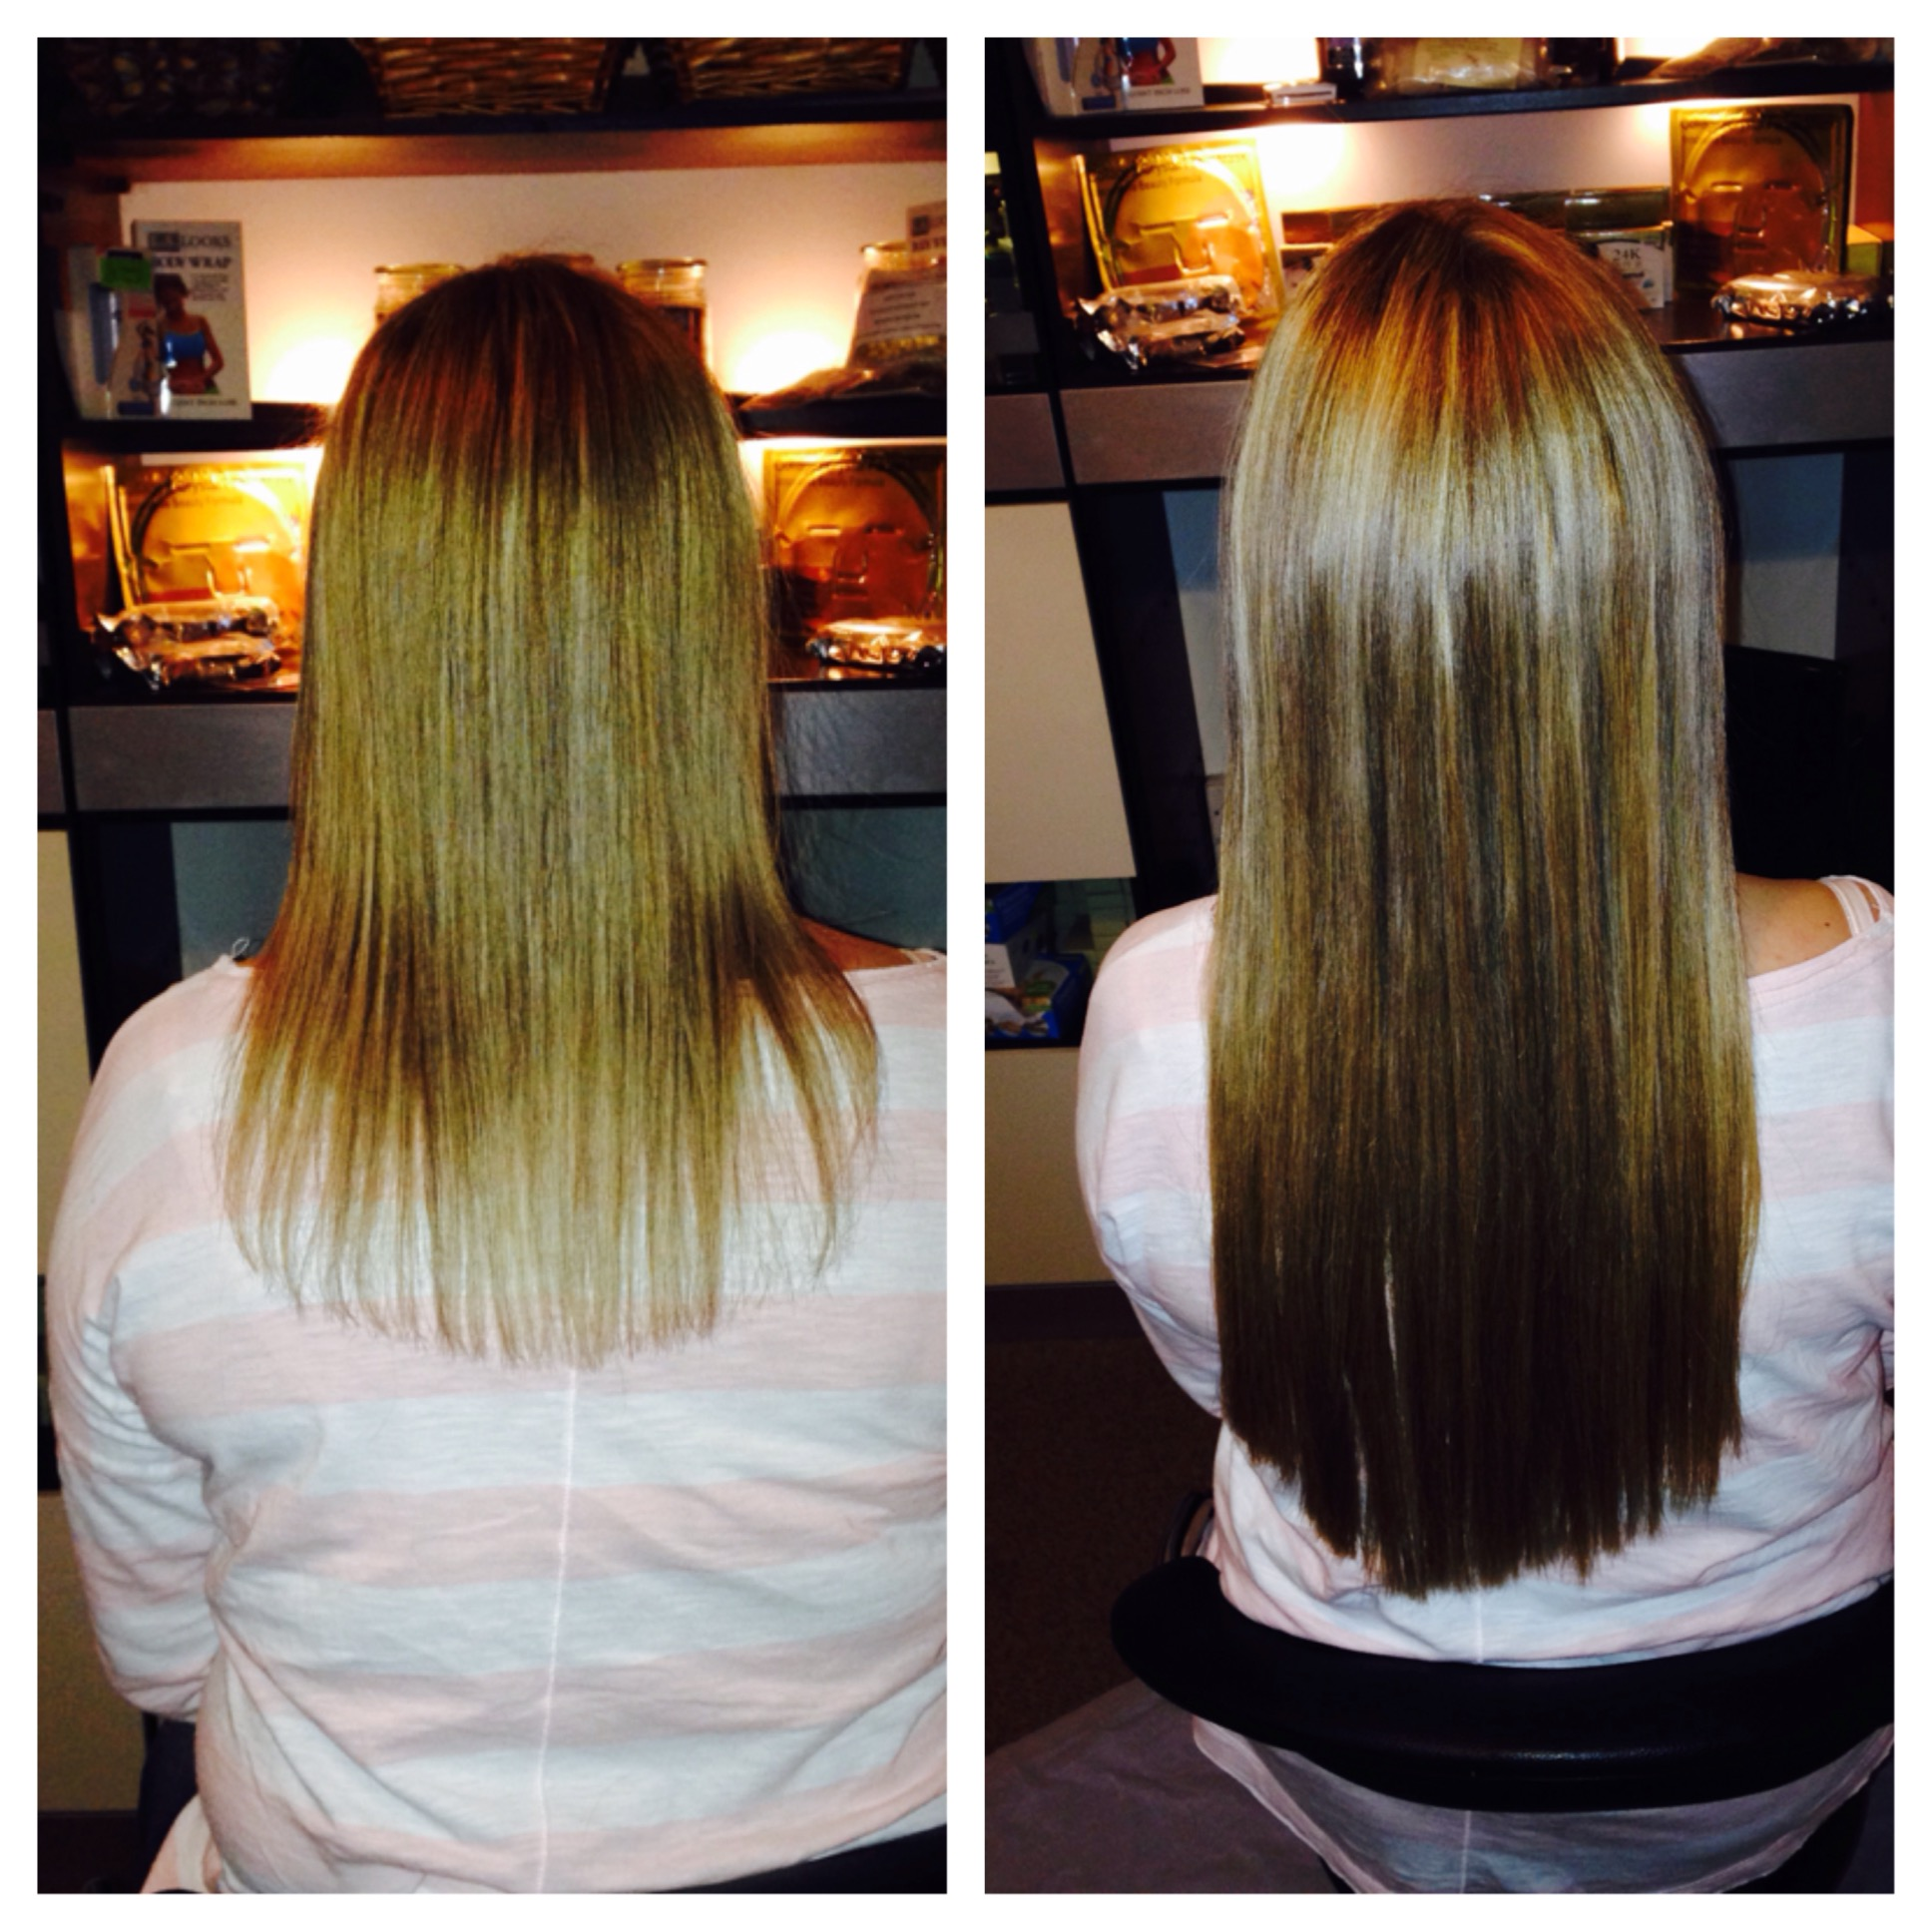 Before and After Hair Extensions in Pass